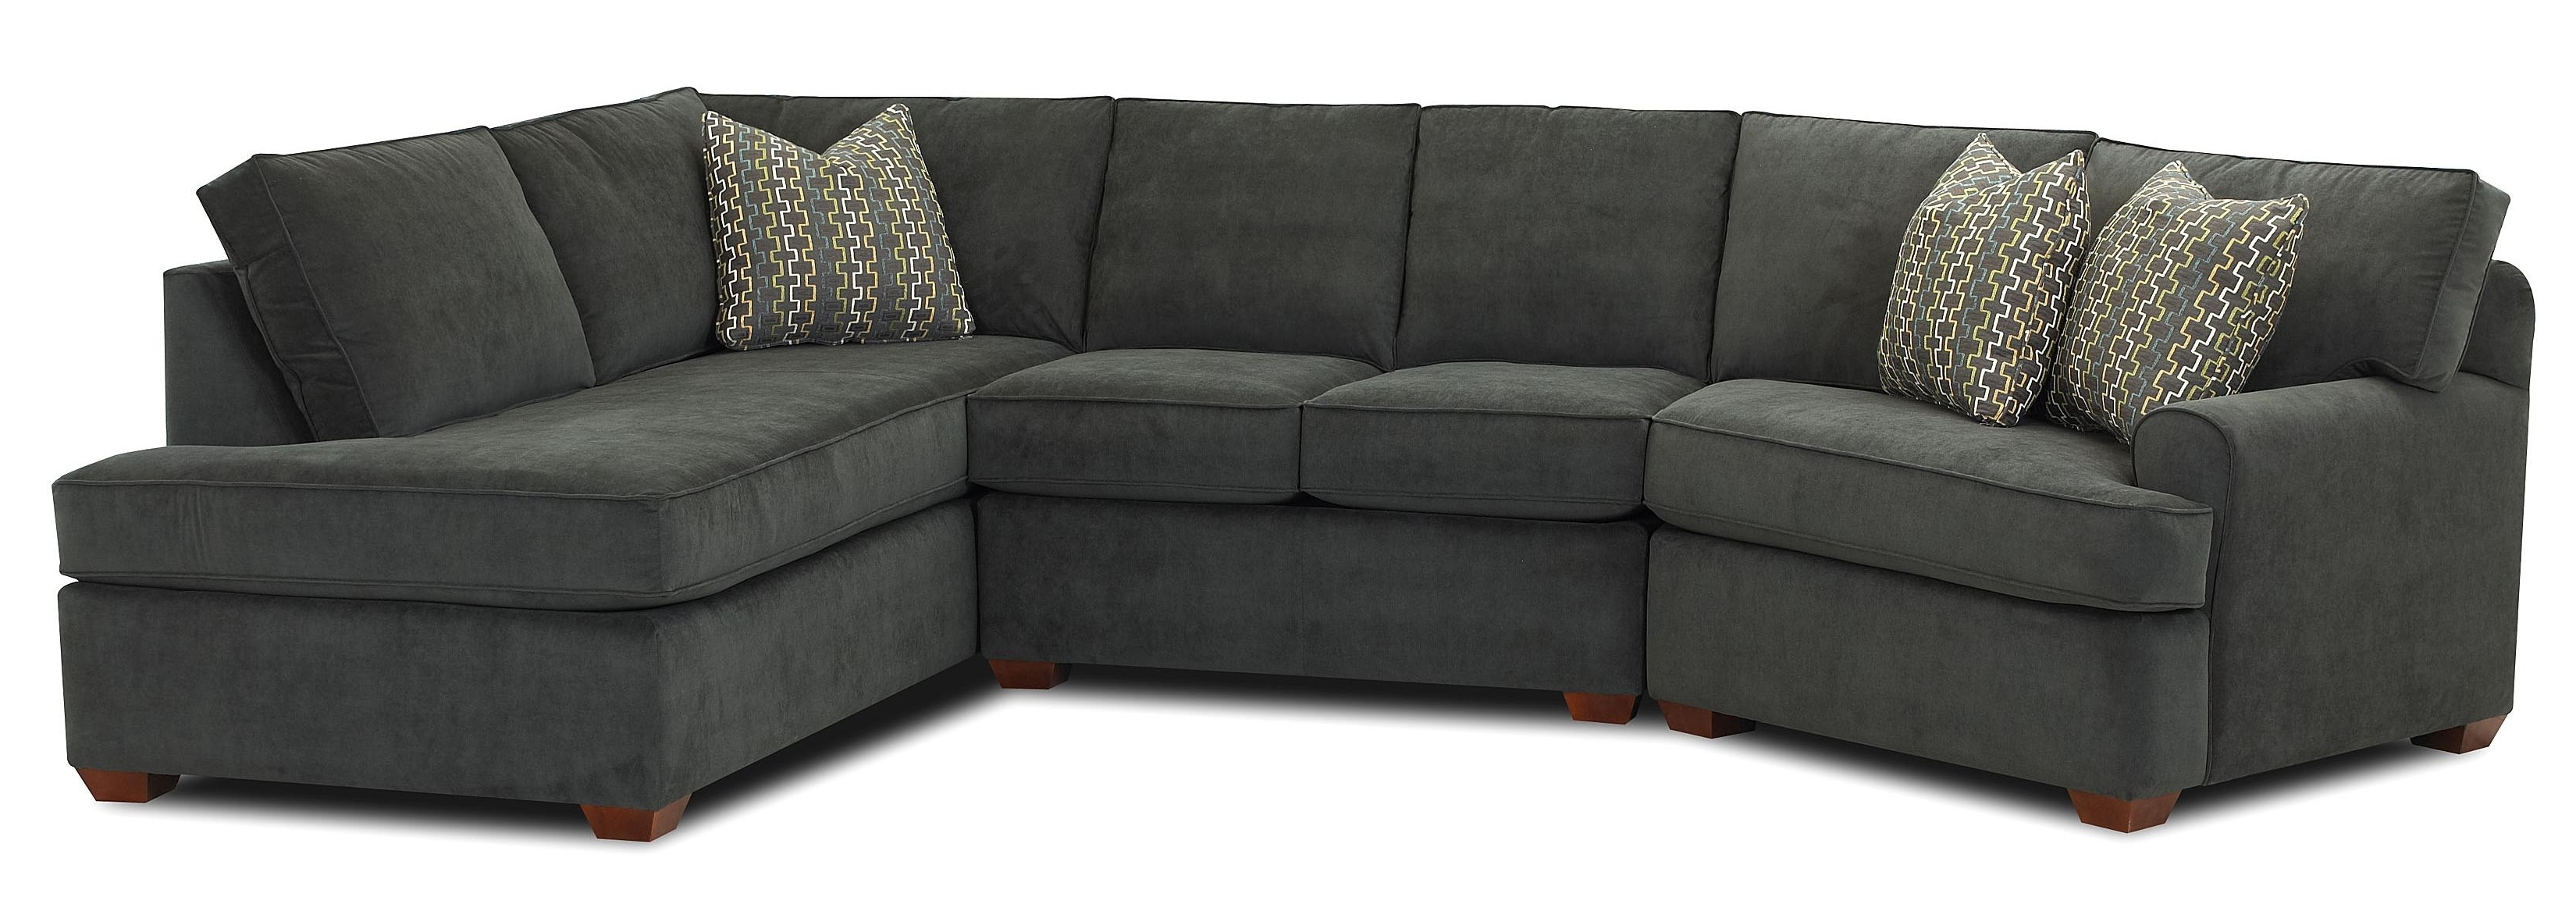 Sectional Sofas With Chaise With Fashionable Sectional Sofa With Right Facing Sofa Chaiseklaussner (View 16 of 20)